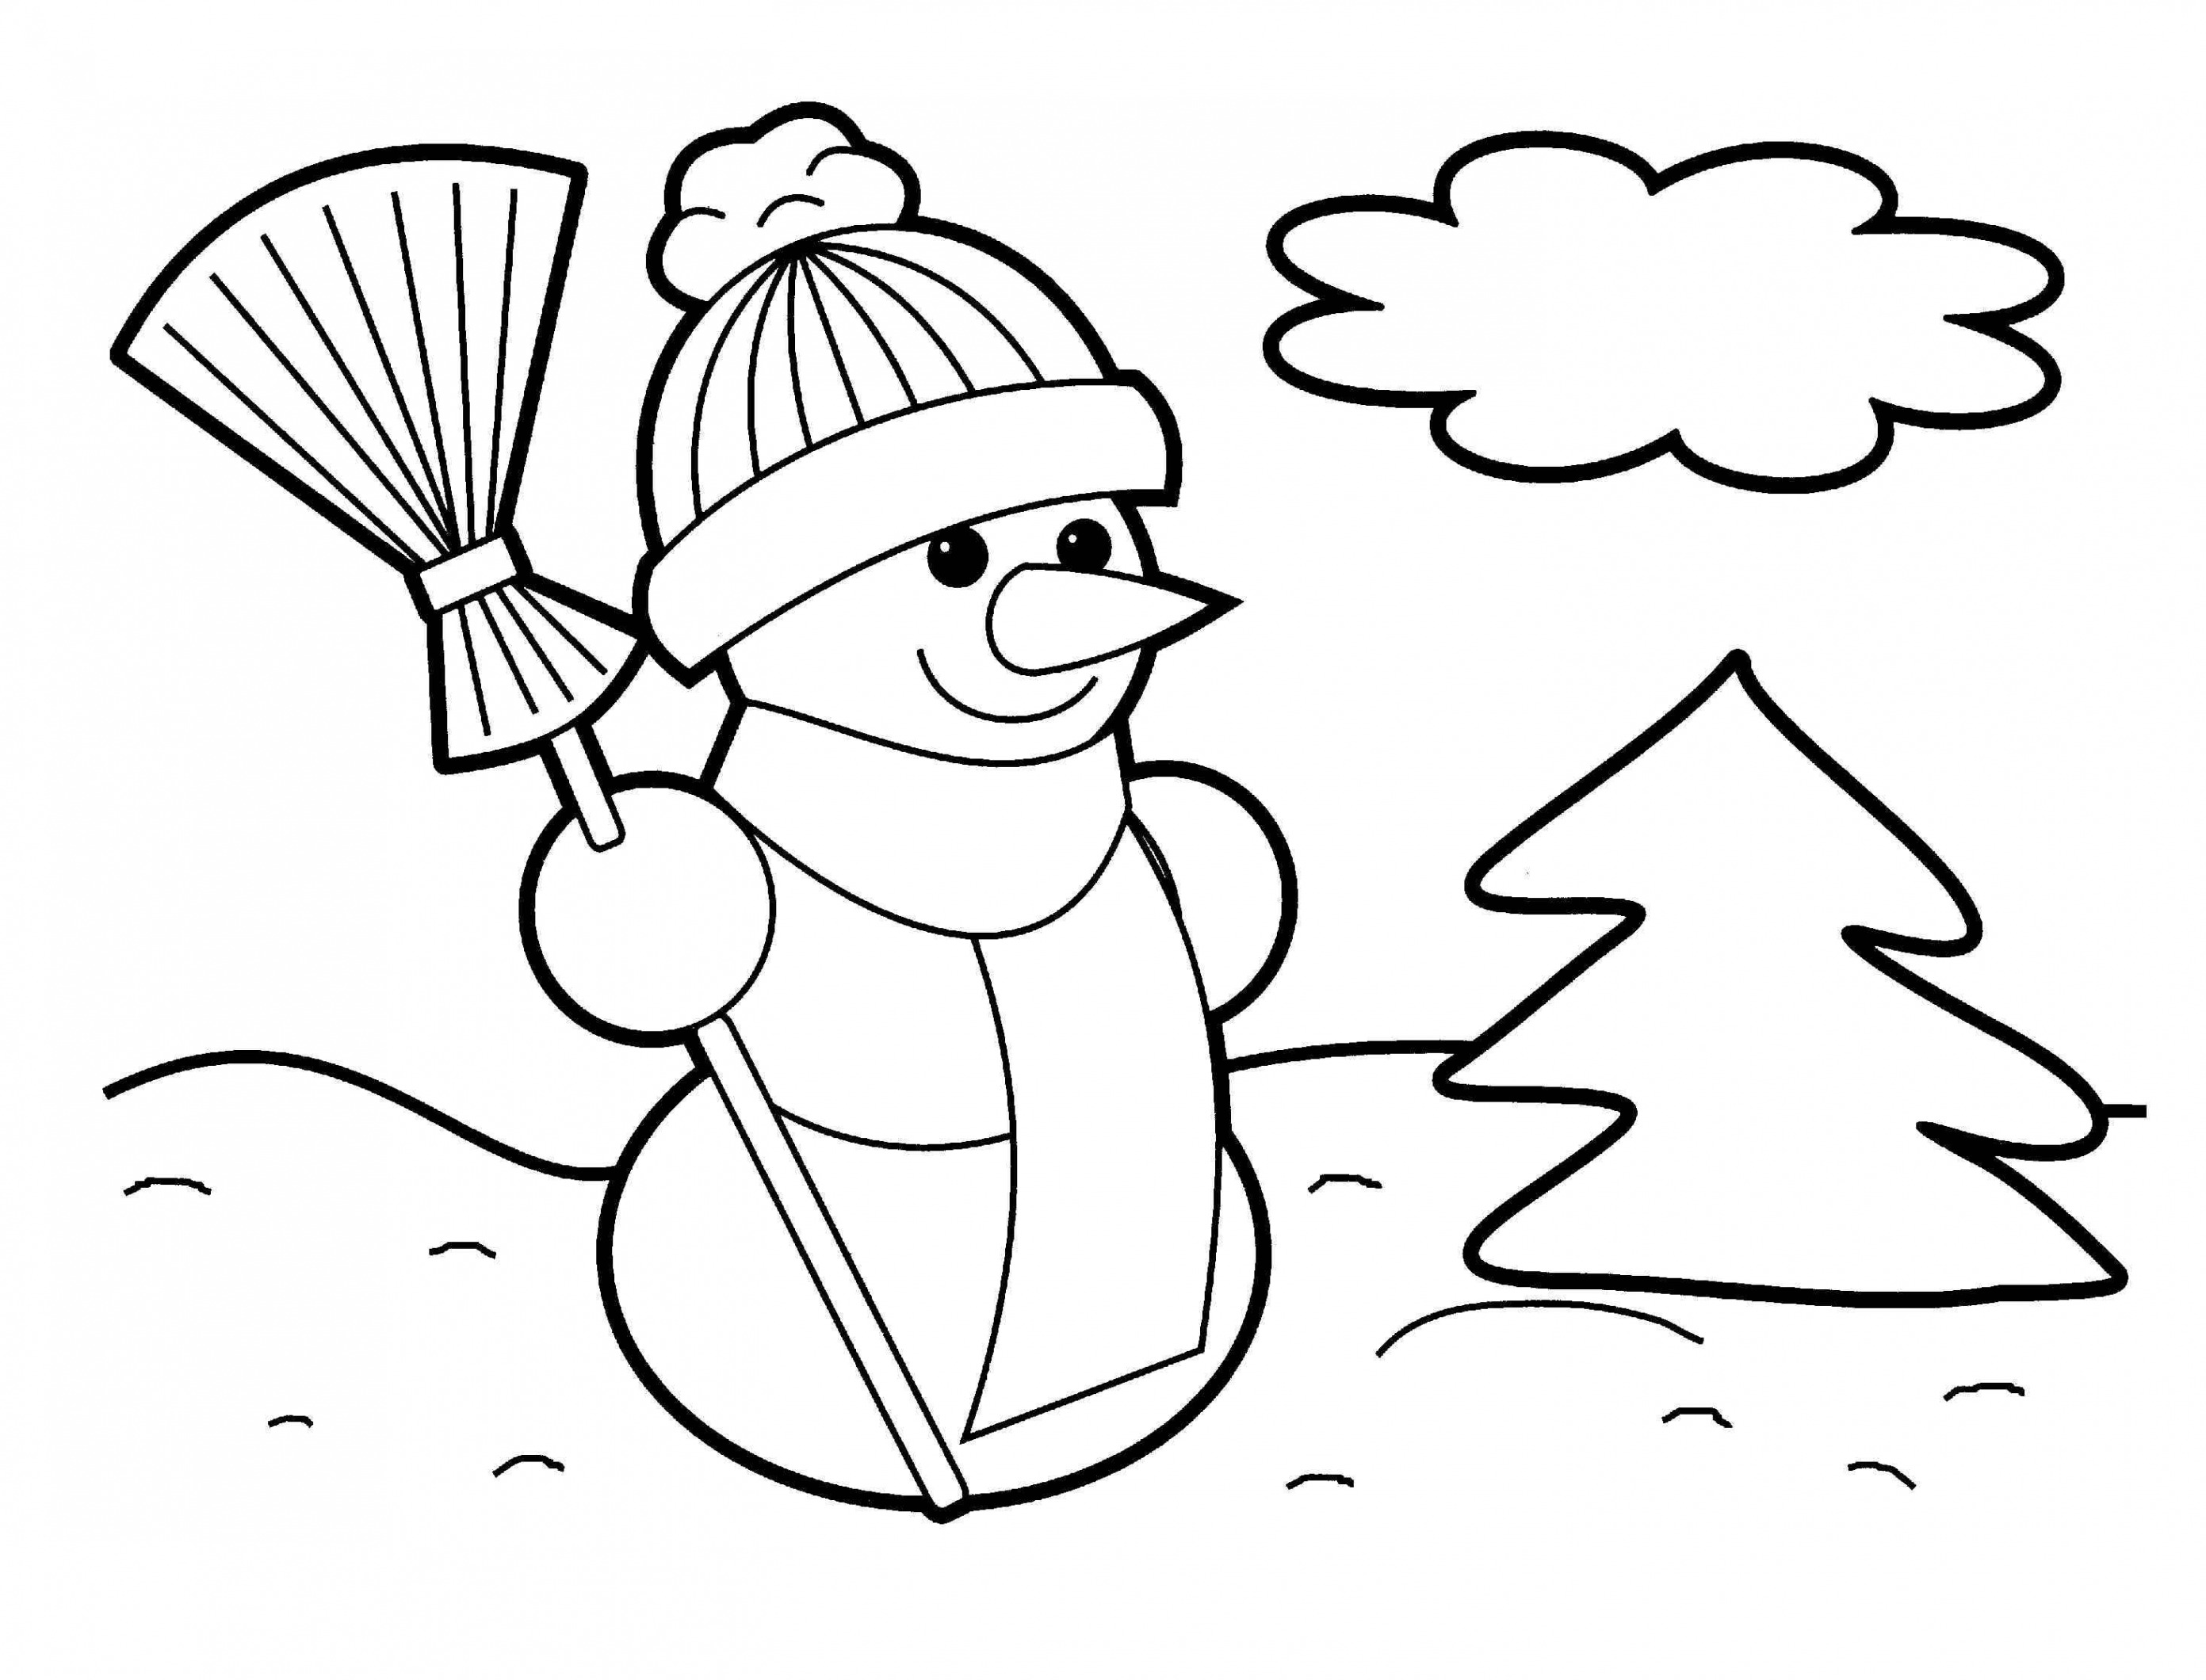 Christmas Colouring Pages And Activities With Snowman Coloring For Kindergarten